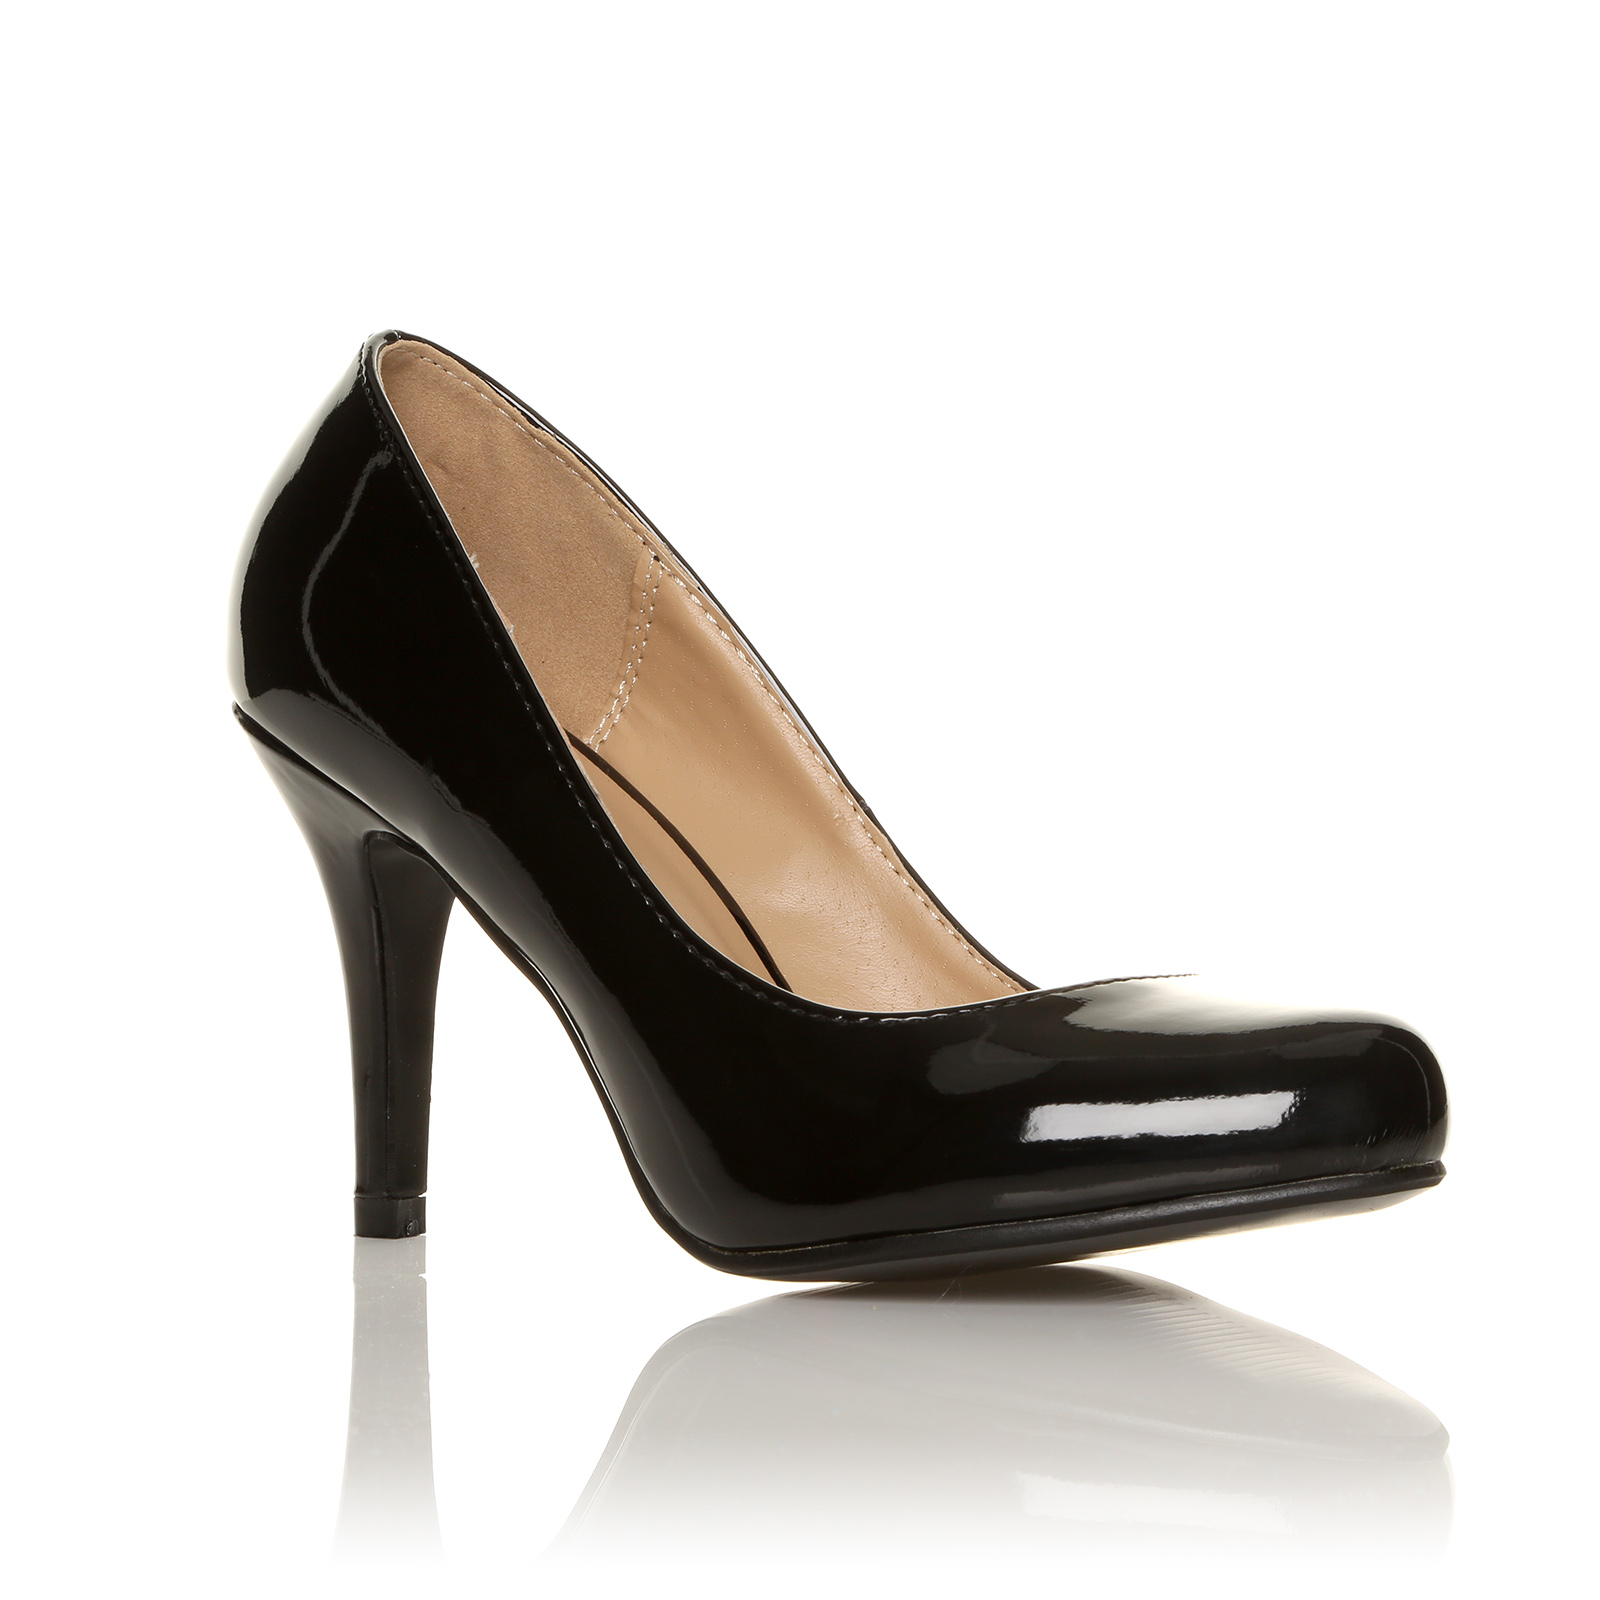 LADIES-COURT-SHOES-WOMENS-OFFICE-SMART-BLACK-PARTY-EVENING-HIGH-HEELS-SHOES-SIZE